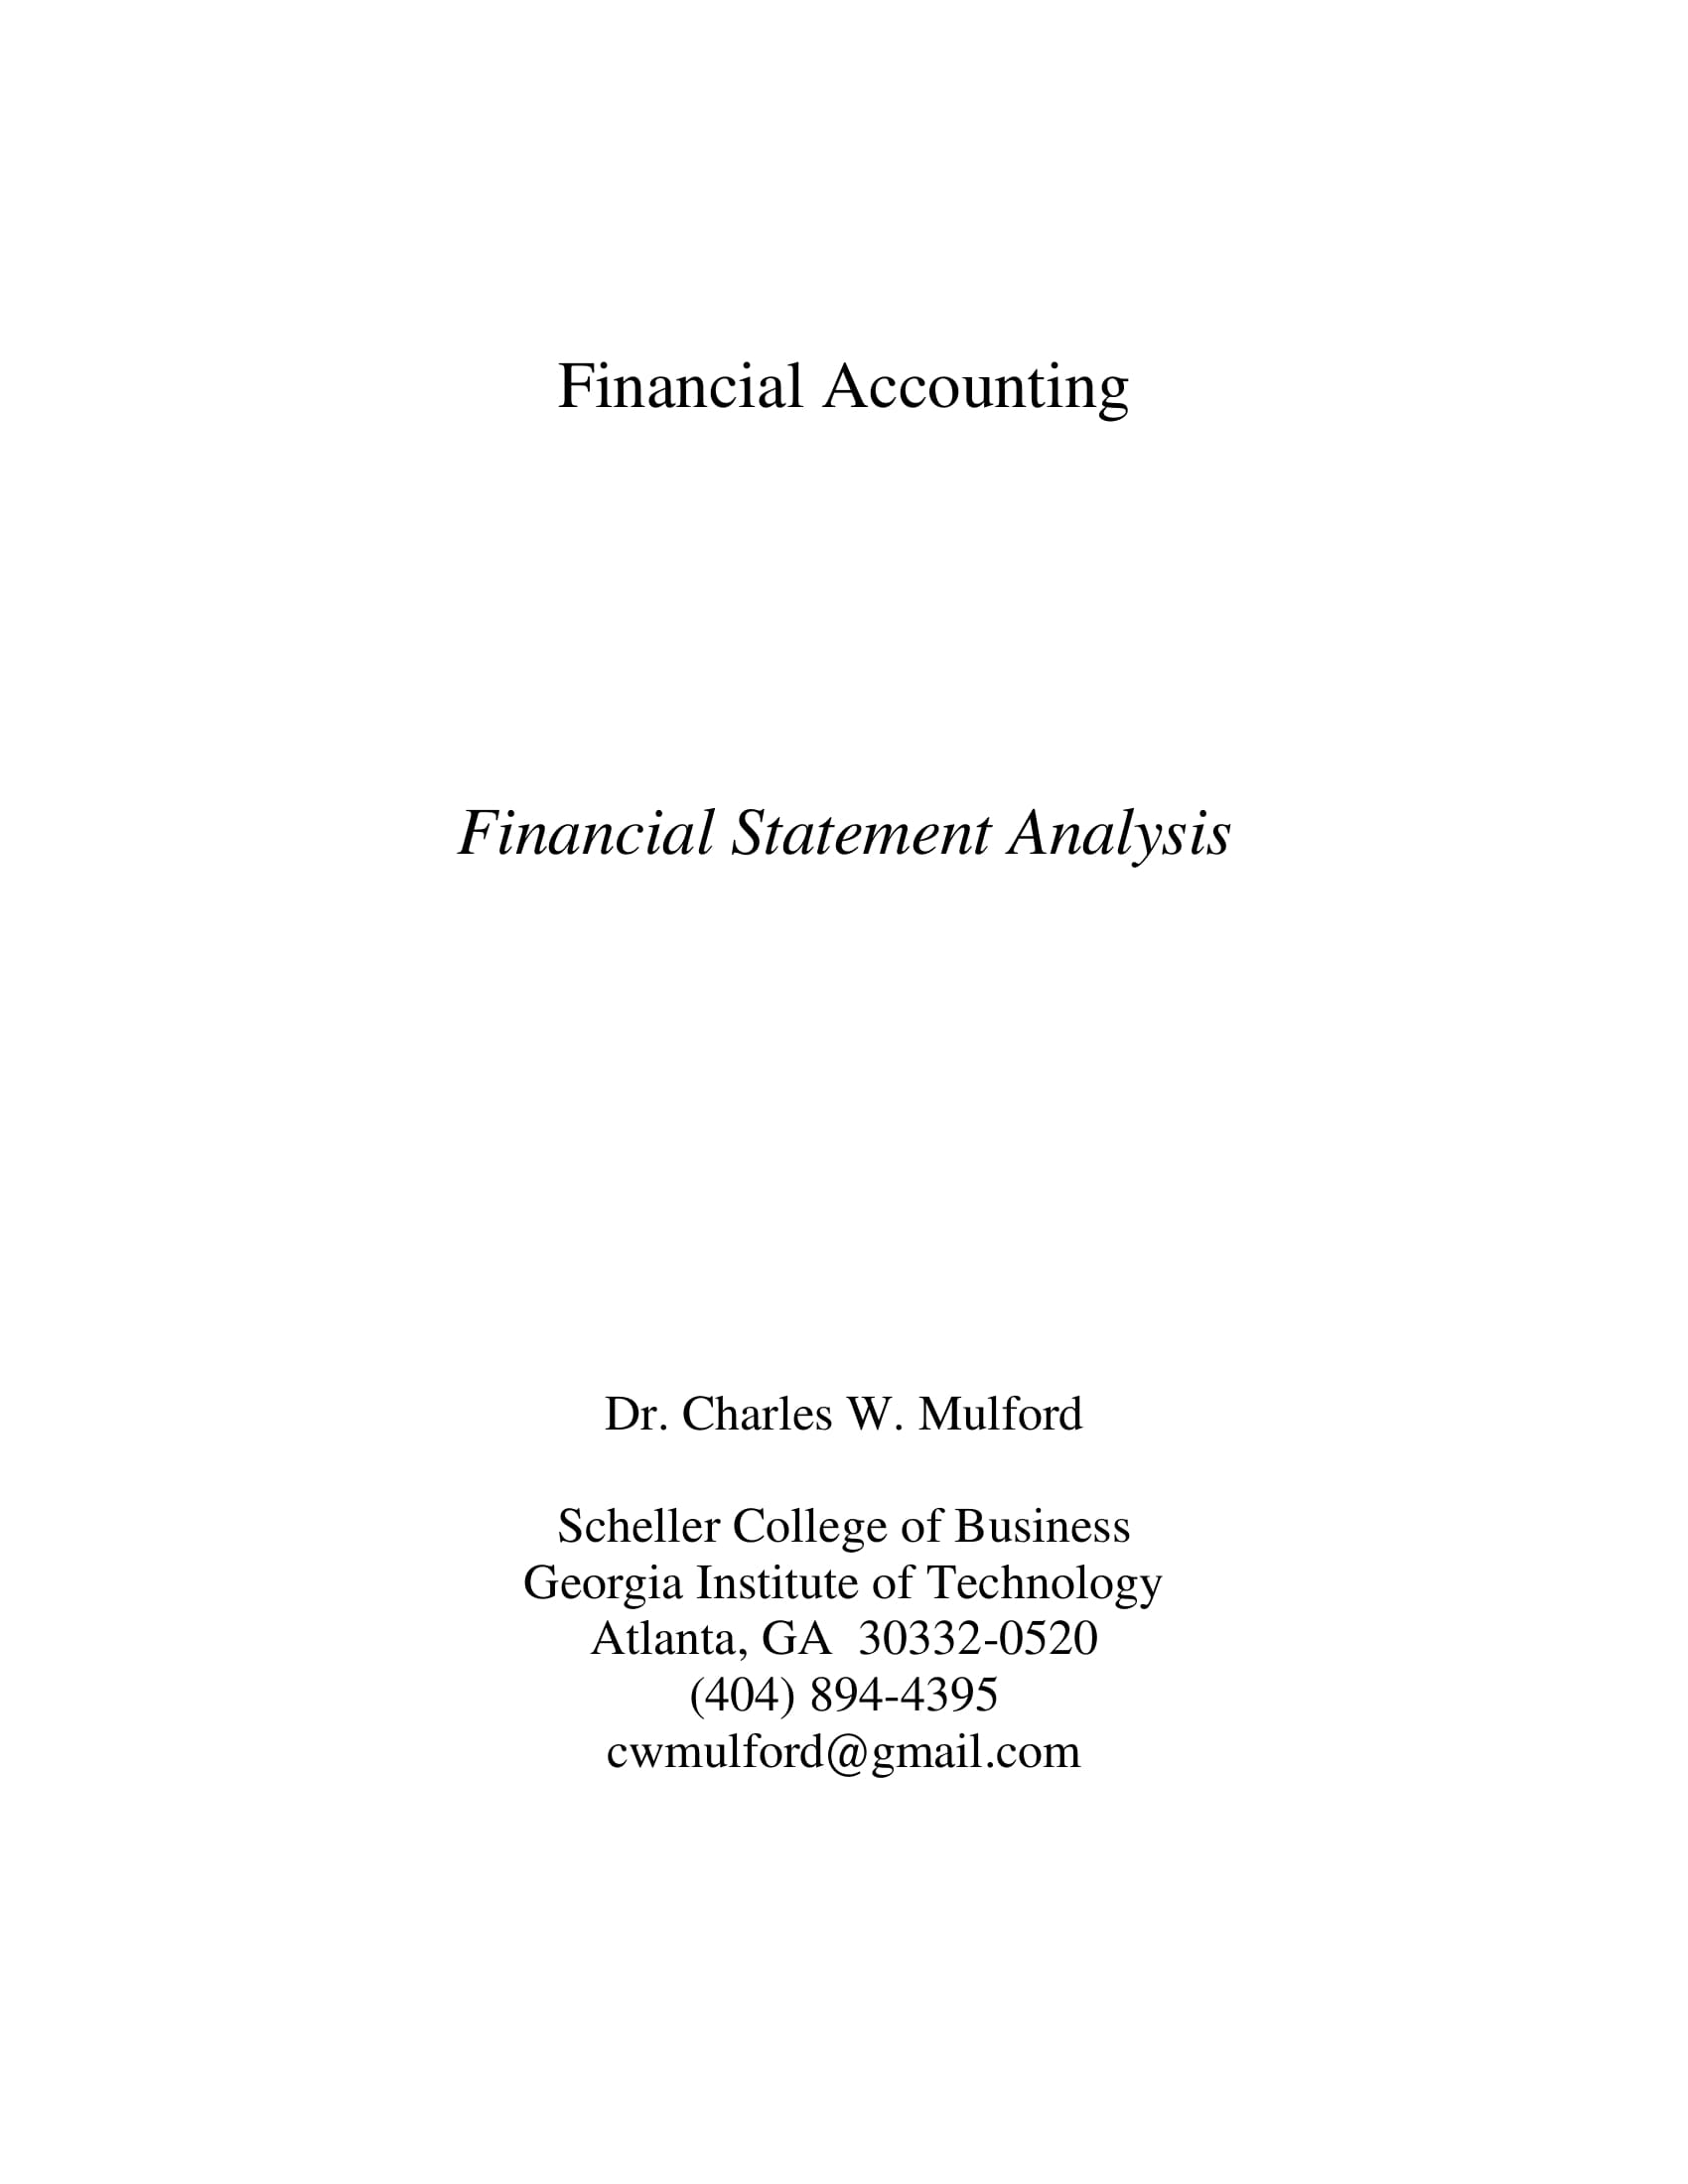 financial statement analysis example 01